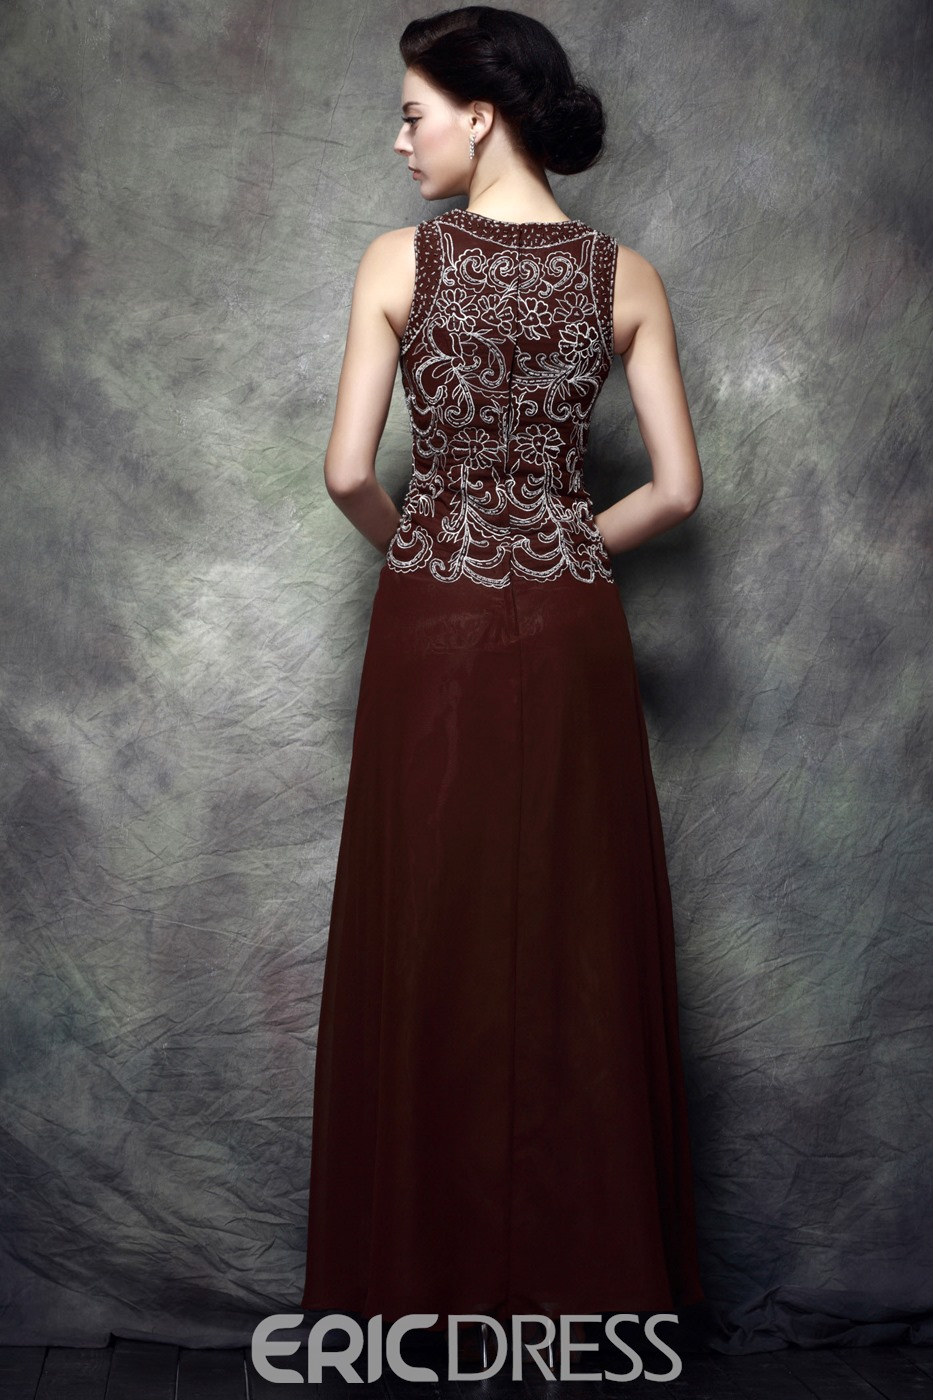 Ericdress Beading Embroidery Sheath Mother of the Bride Dress